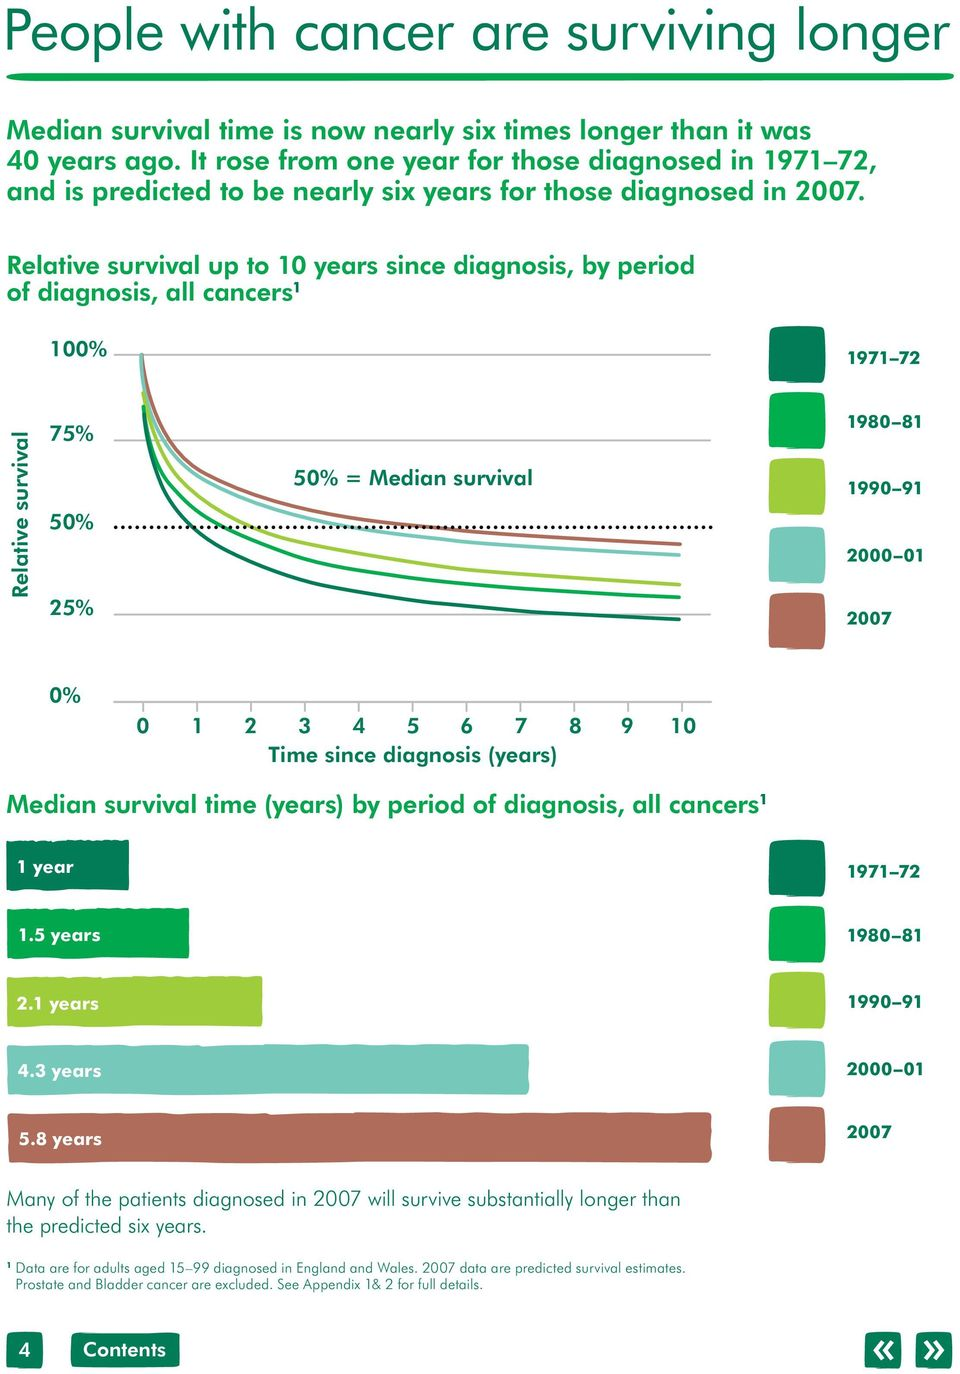 Relative survival up to 0 years since diagnosis, by period of diagnosis, all cancers 00% 97 72 Relative survival 75% 50% 25% 50% = Median survival 980 8 990 9 2000 0 2007 0% 0 2 3 4 5 6 7 8 9 0 Time